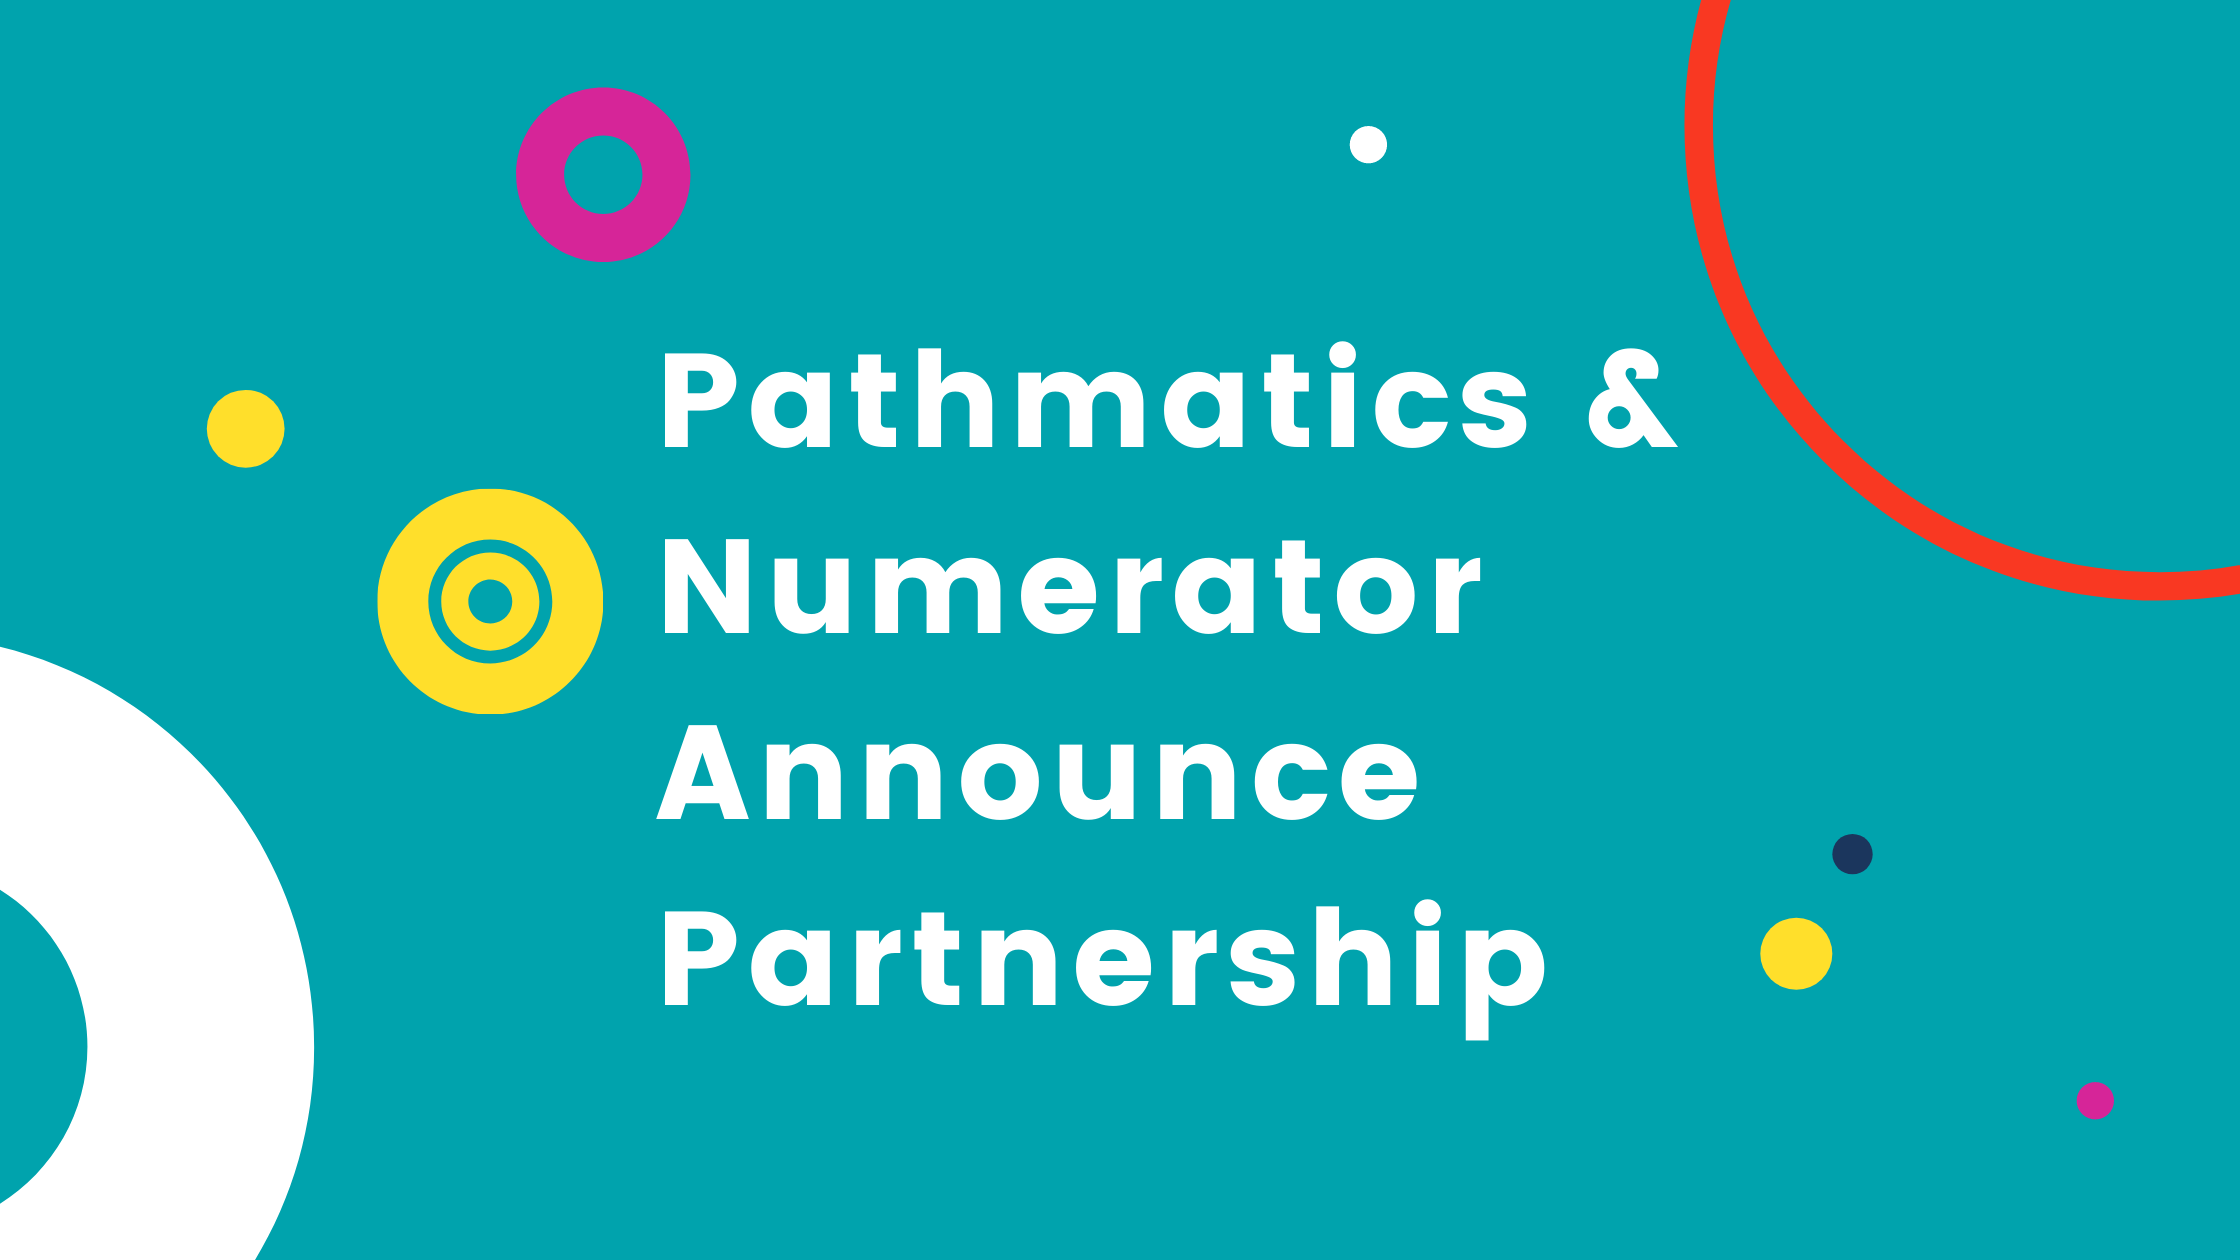 Pathmatics & Numerator Announce New Partnership